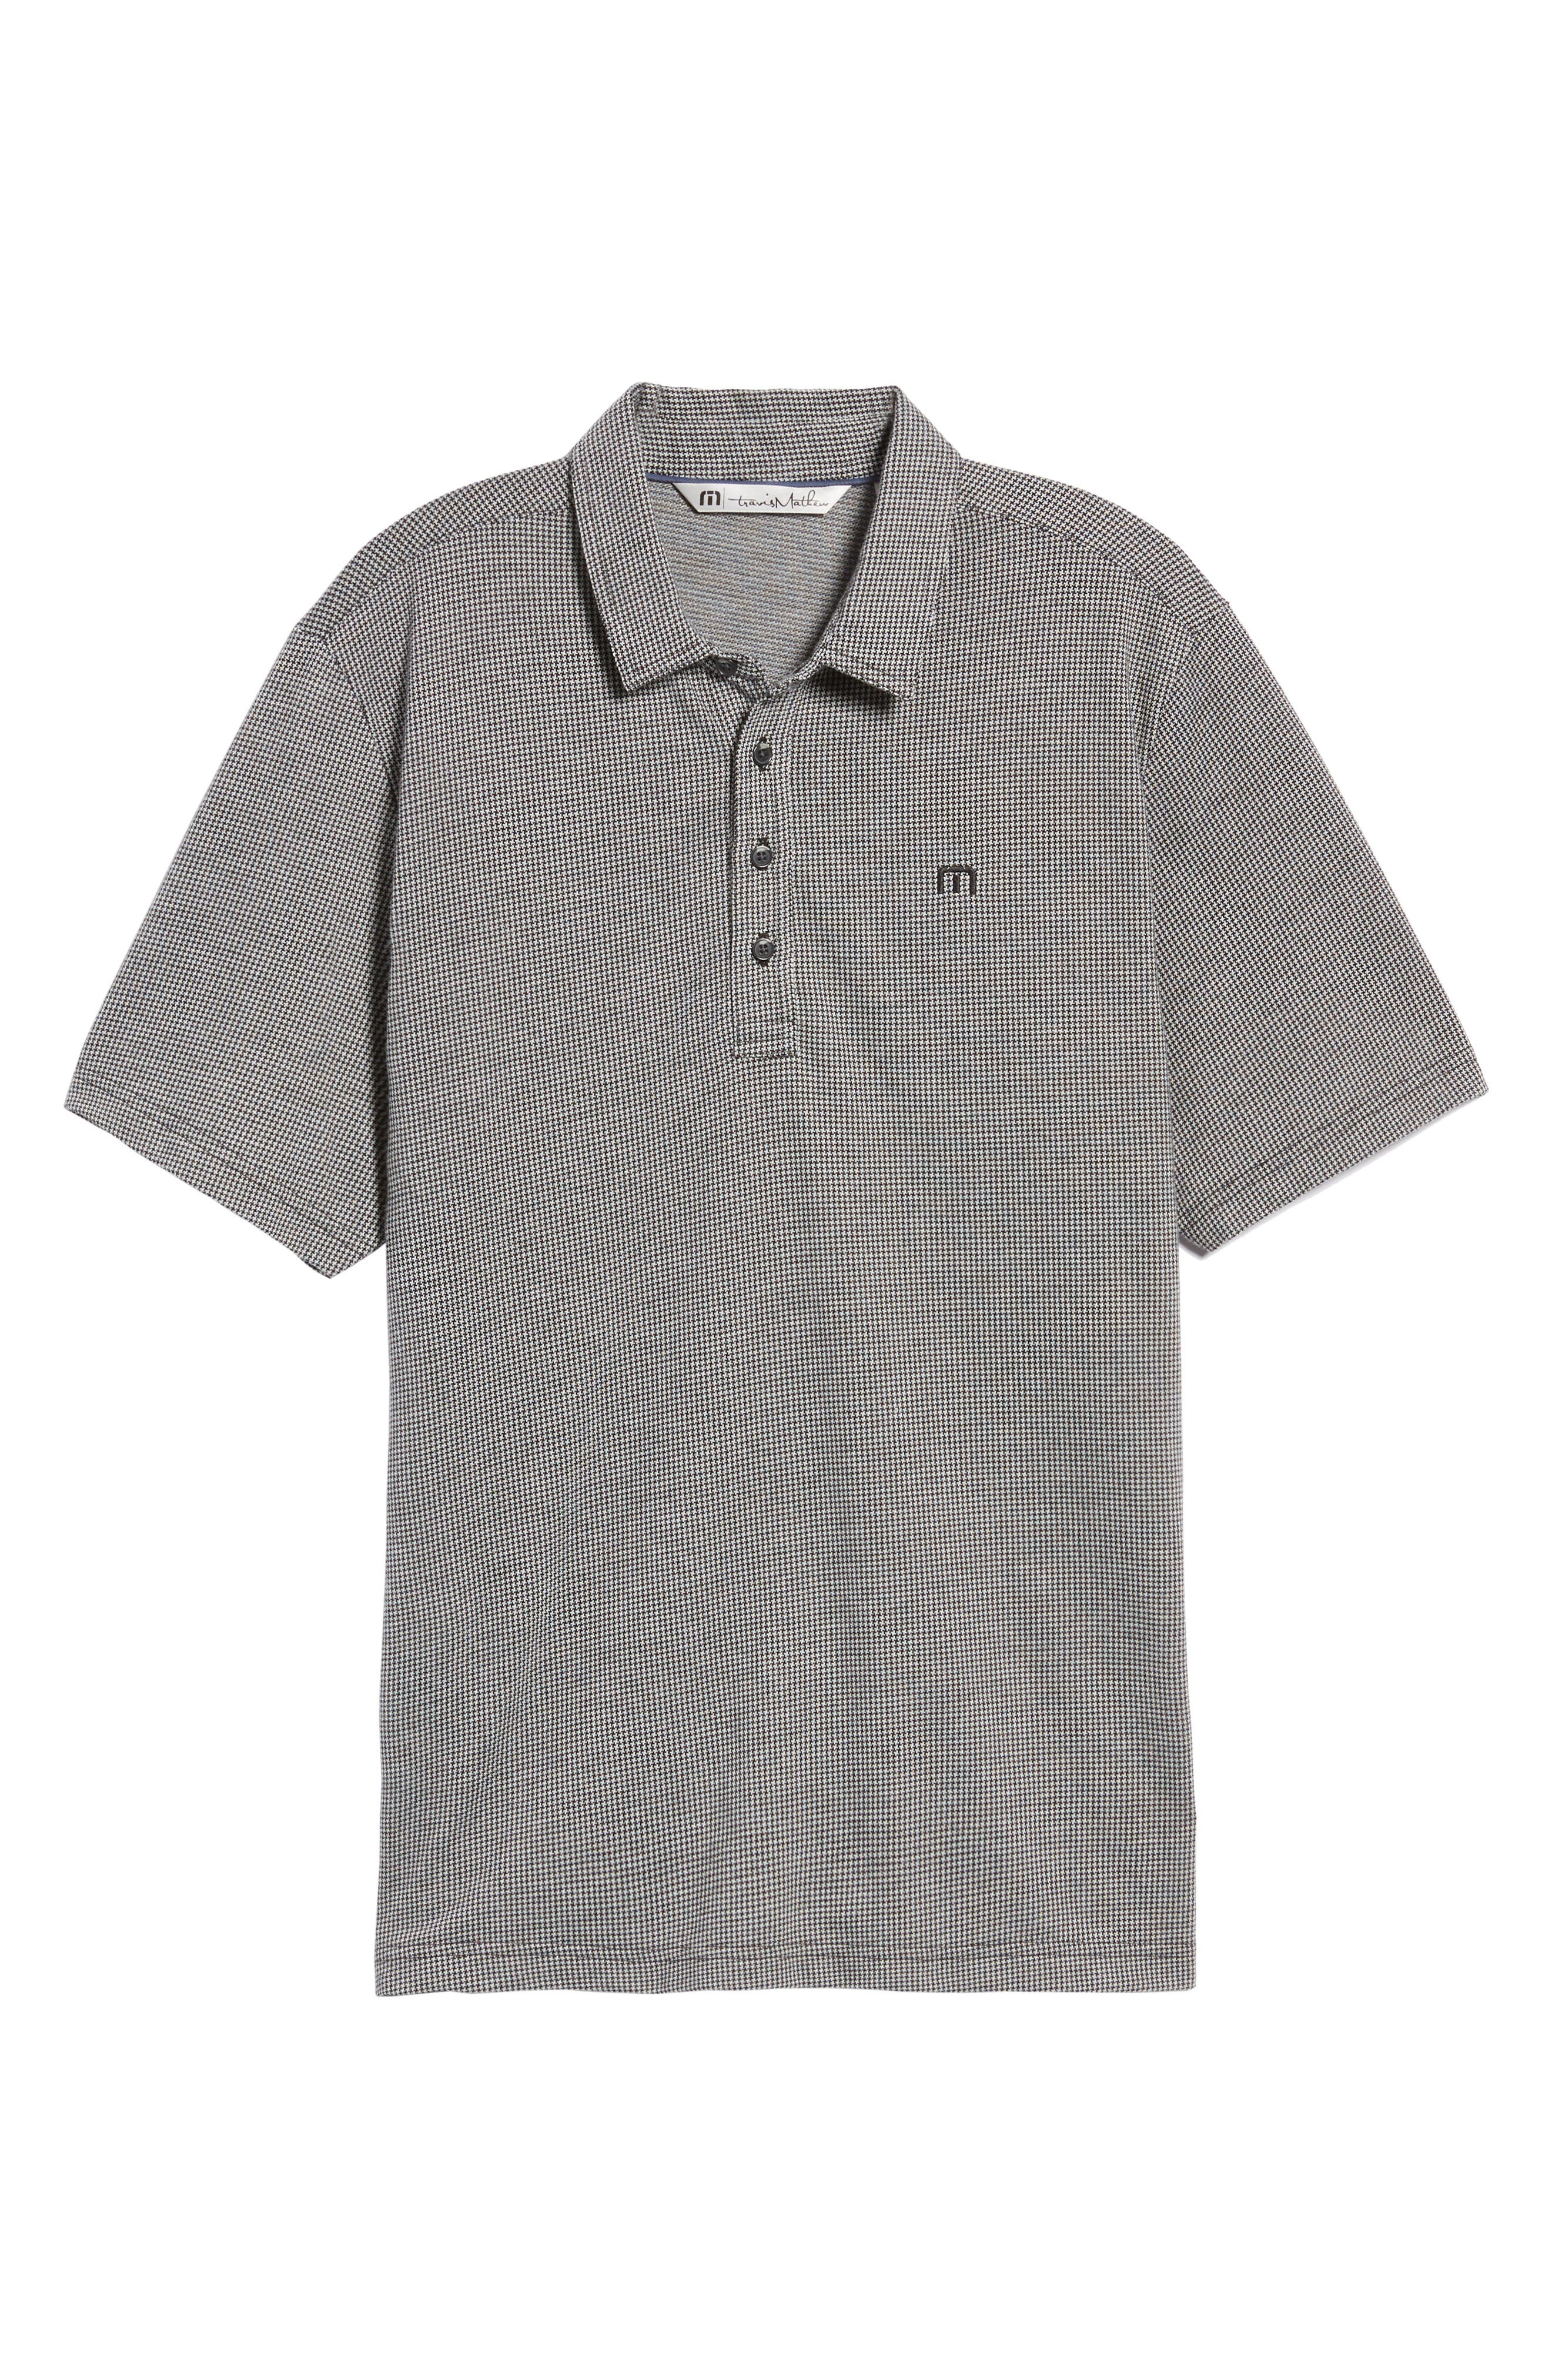 Lawrence Houndstooth Polo,                             Alternate thumbnail 6, color,                             100